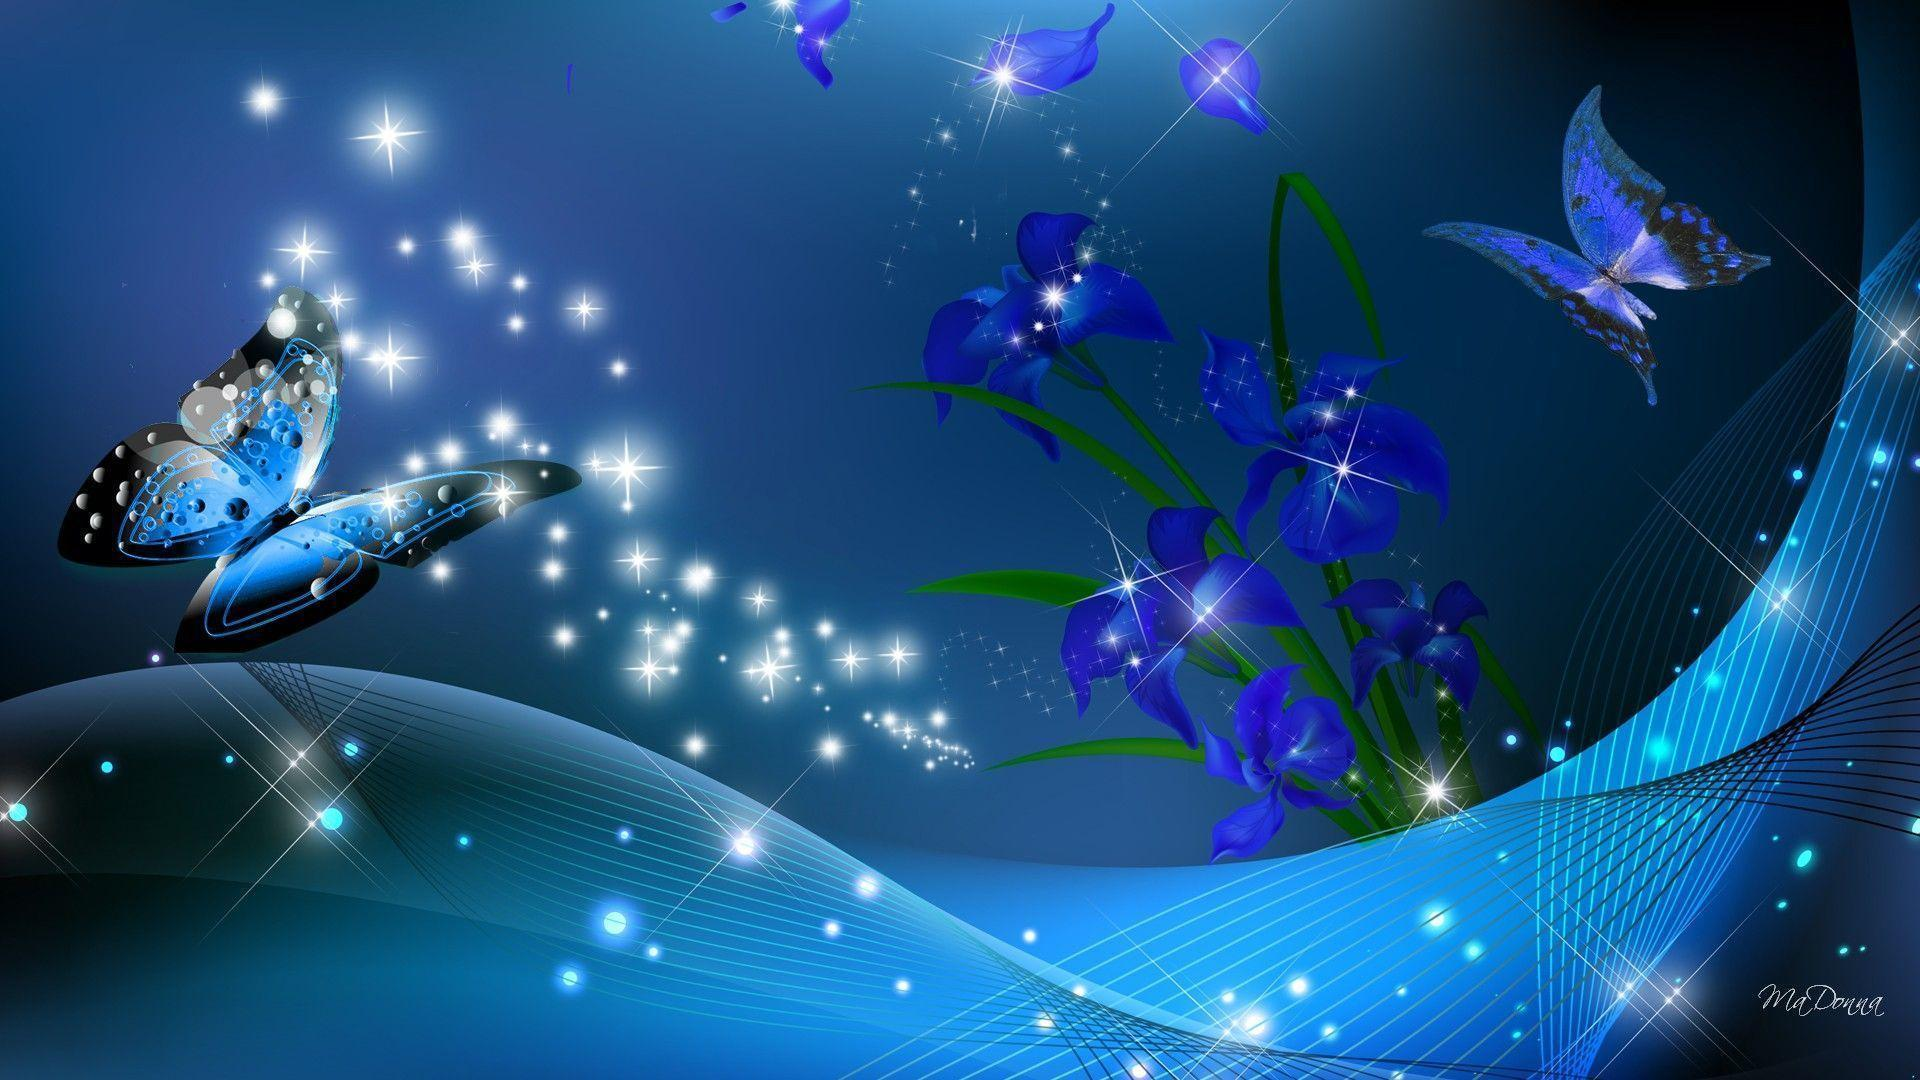 Blue Nature Wallpapers - Wallpaper Cave